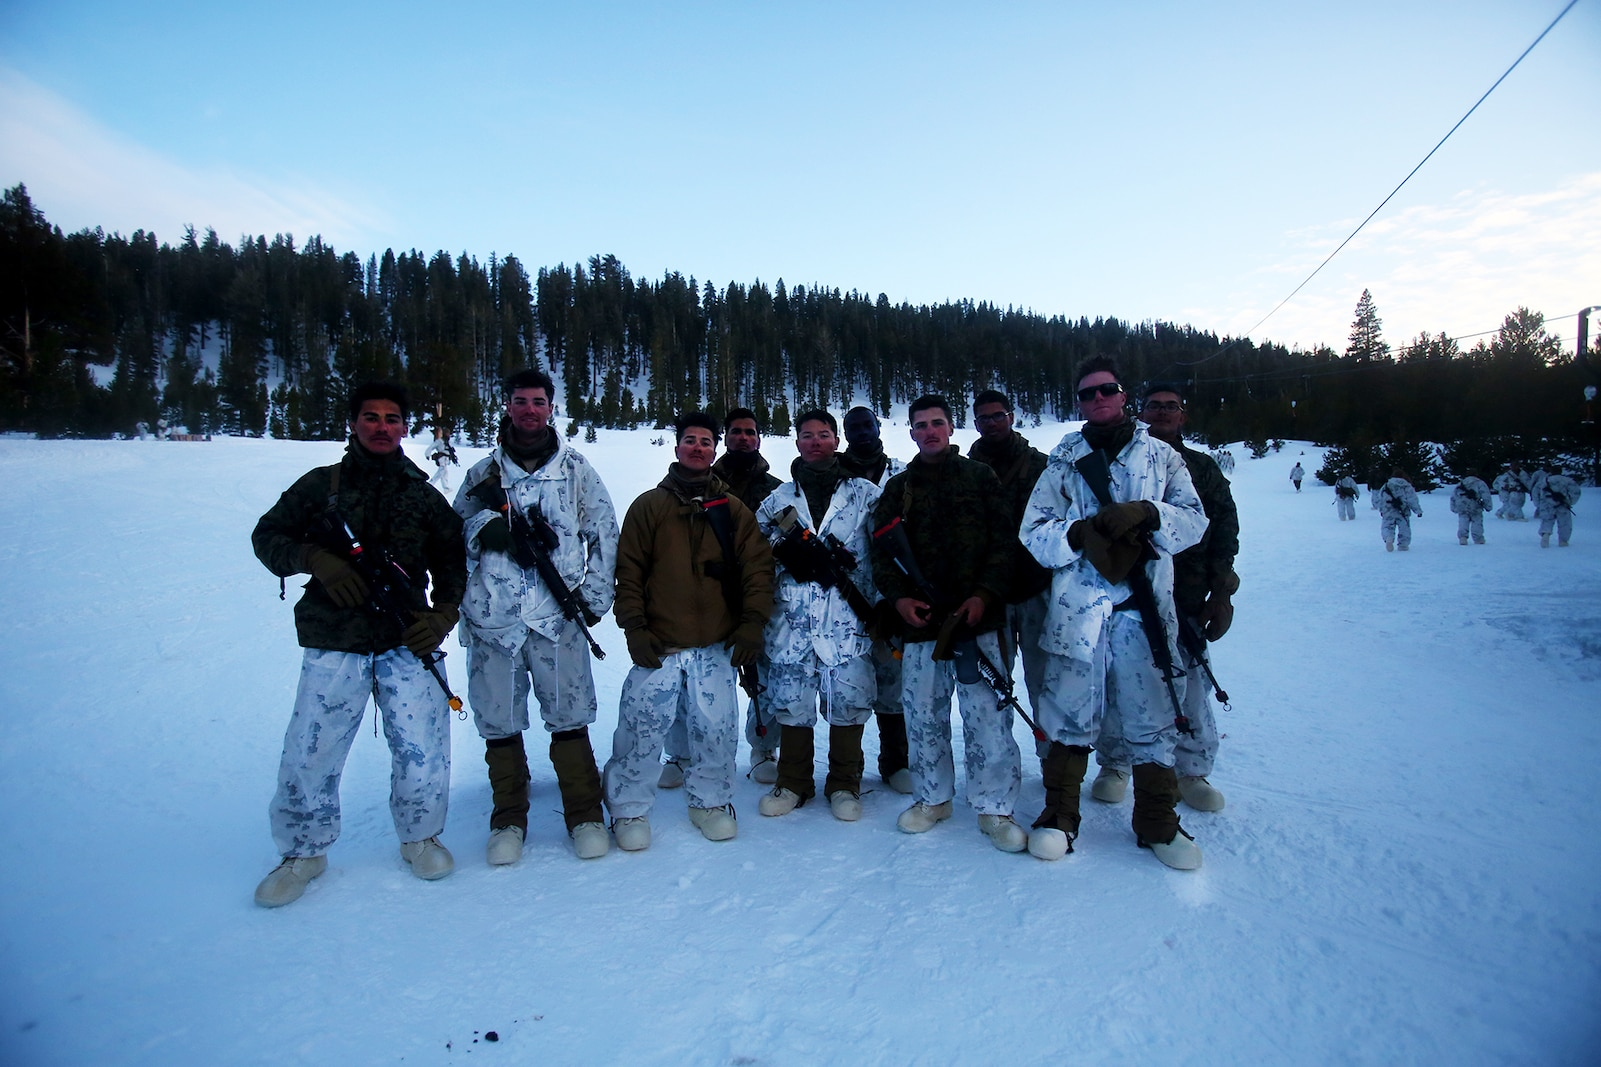 Marines pose for a photo during a cold weather training exercise at the Mountain Warfare Training Center in Bridgeport, Calif., March 16, 2016. The Marines, combat engineers with 7th Engineer Support Battalion, 1st Marine Logistics Group, were among 90 Marines with 7th ESB who served as the logistics combat element in support of 2nd Battalion, 4th Marine Regiment, 1st Marine Division, during Mountain Exercise 6-16, Feb. 24- March 26, 2016. The Battalion integrated 18 combat engineers with the infantrymen conducting the exercise. (U.S. Marine Corps photo by Sgt. Laura Gauna/released)